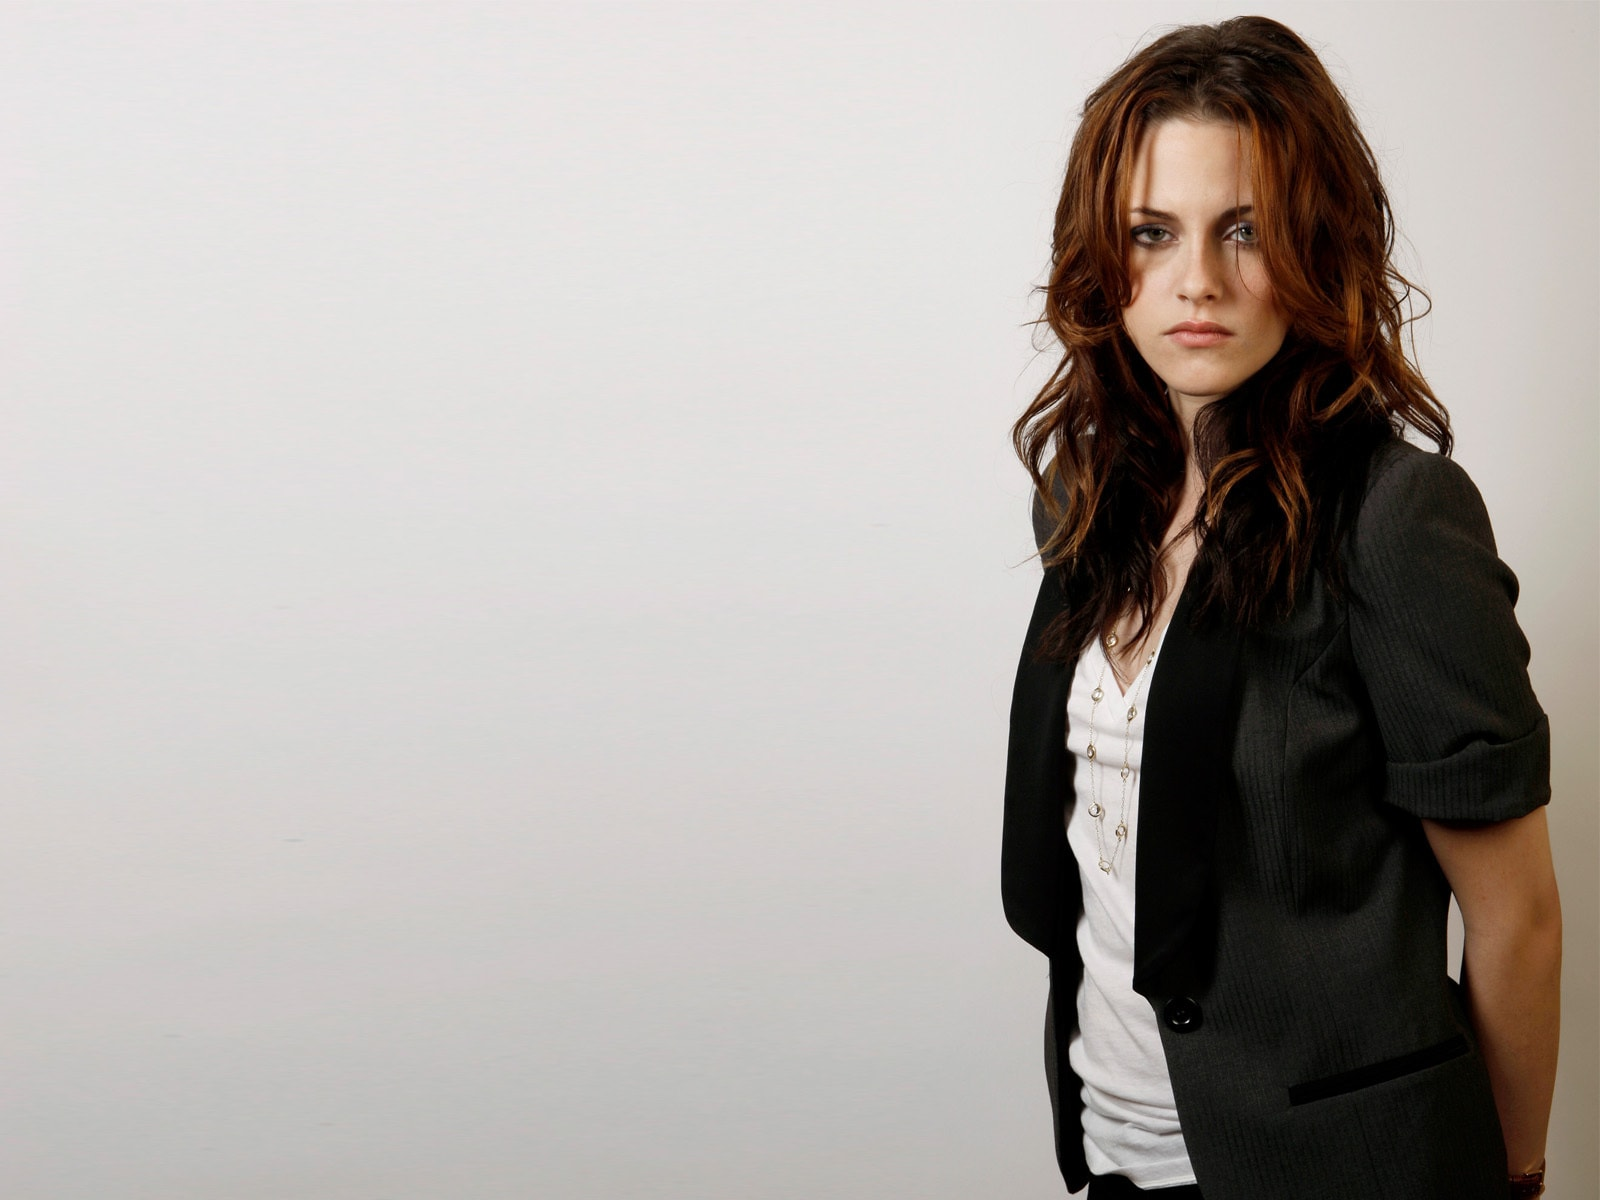 Kristen Stewart Background